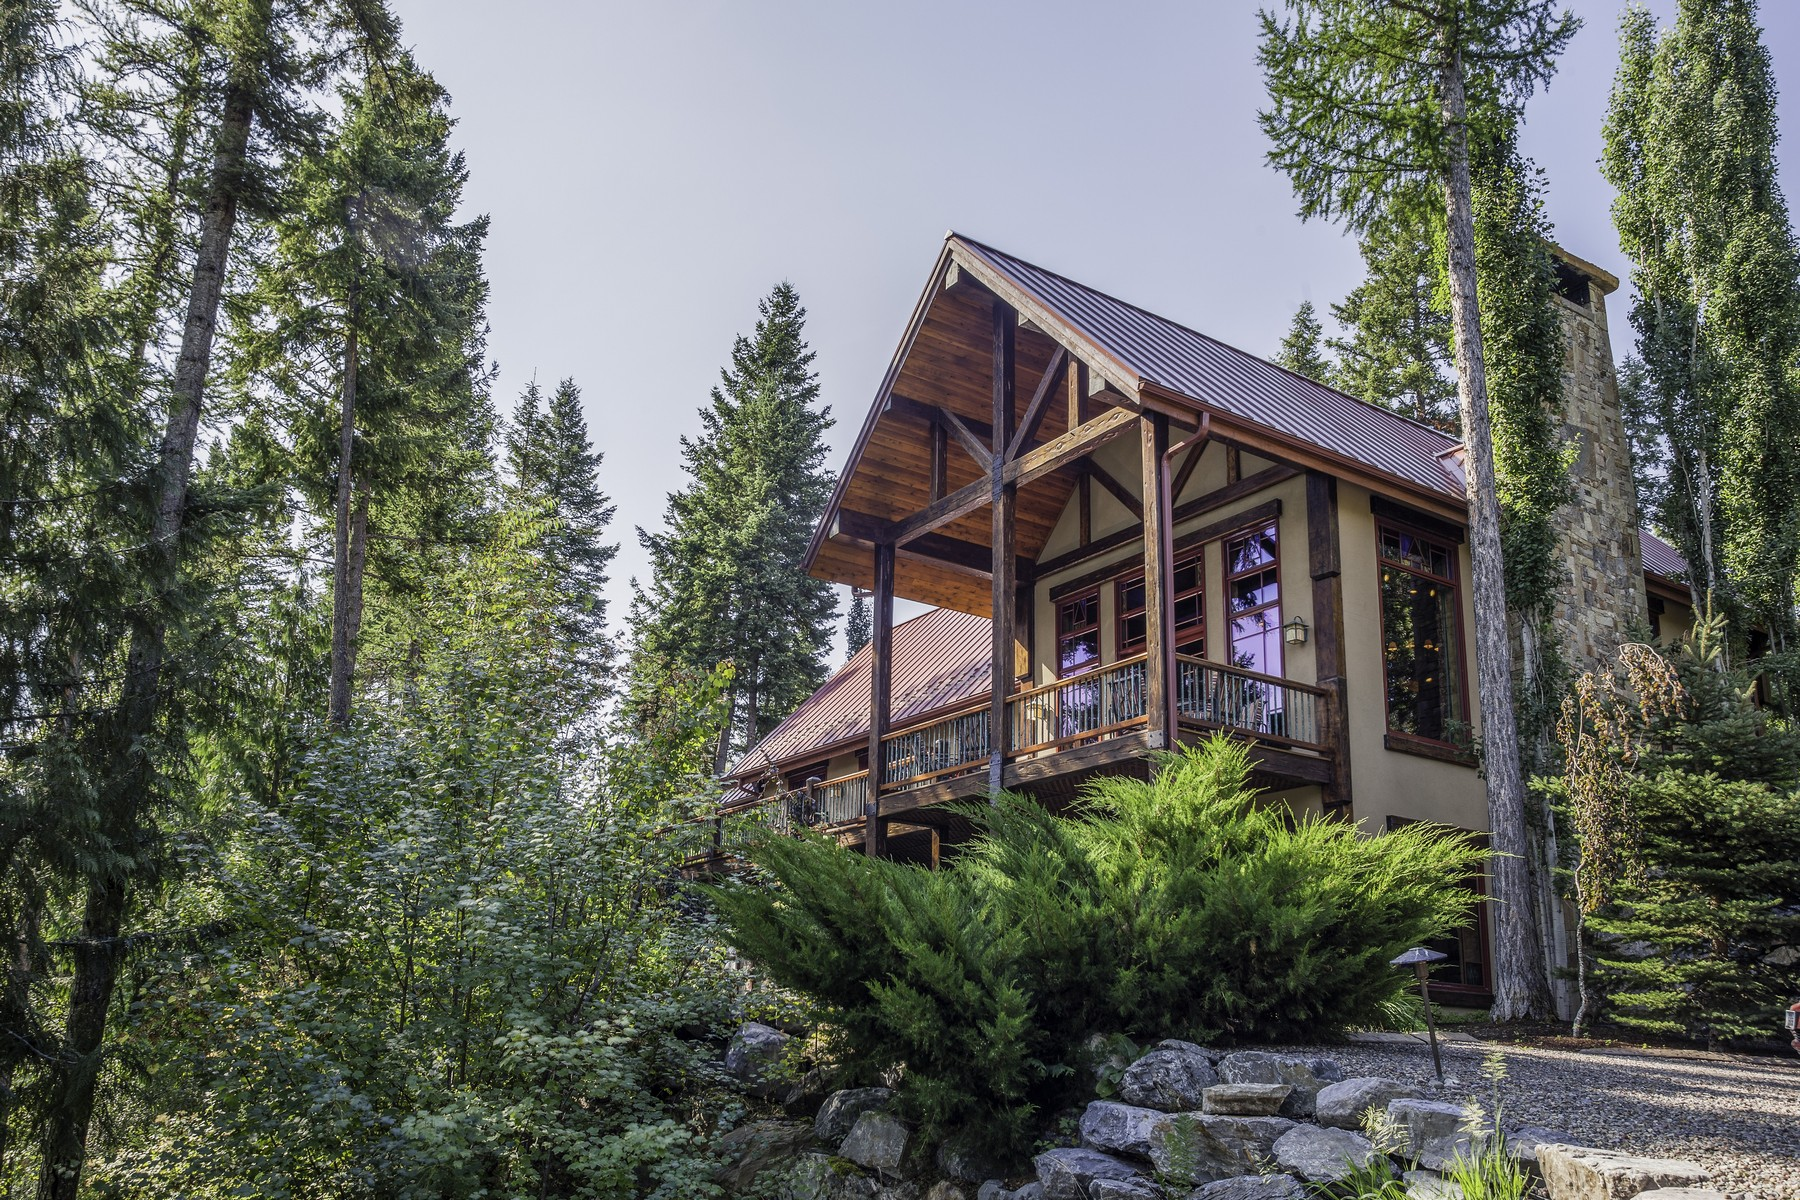 Additional photo for property listing at 1031 Rainbow Dr , Bigfork, MT 59911 1031  Rainbow Dr Bigfork, Montana 59911 United States